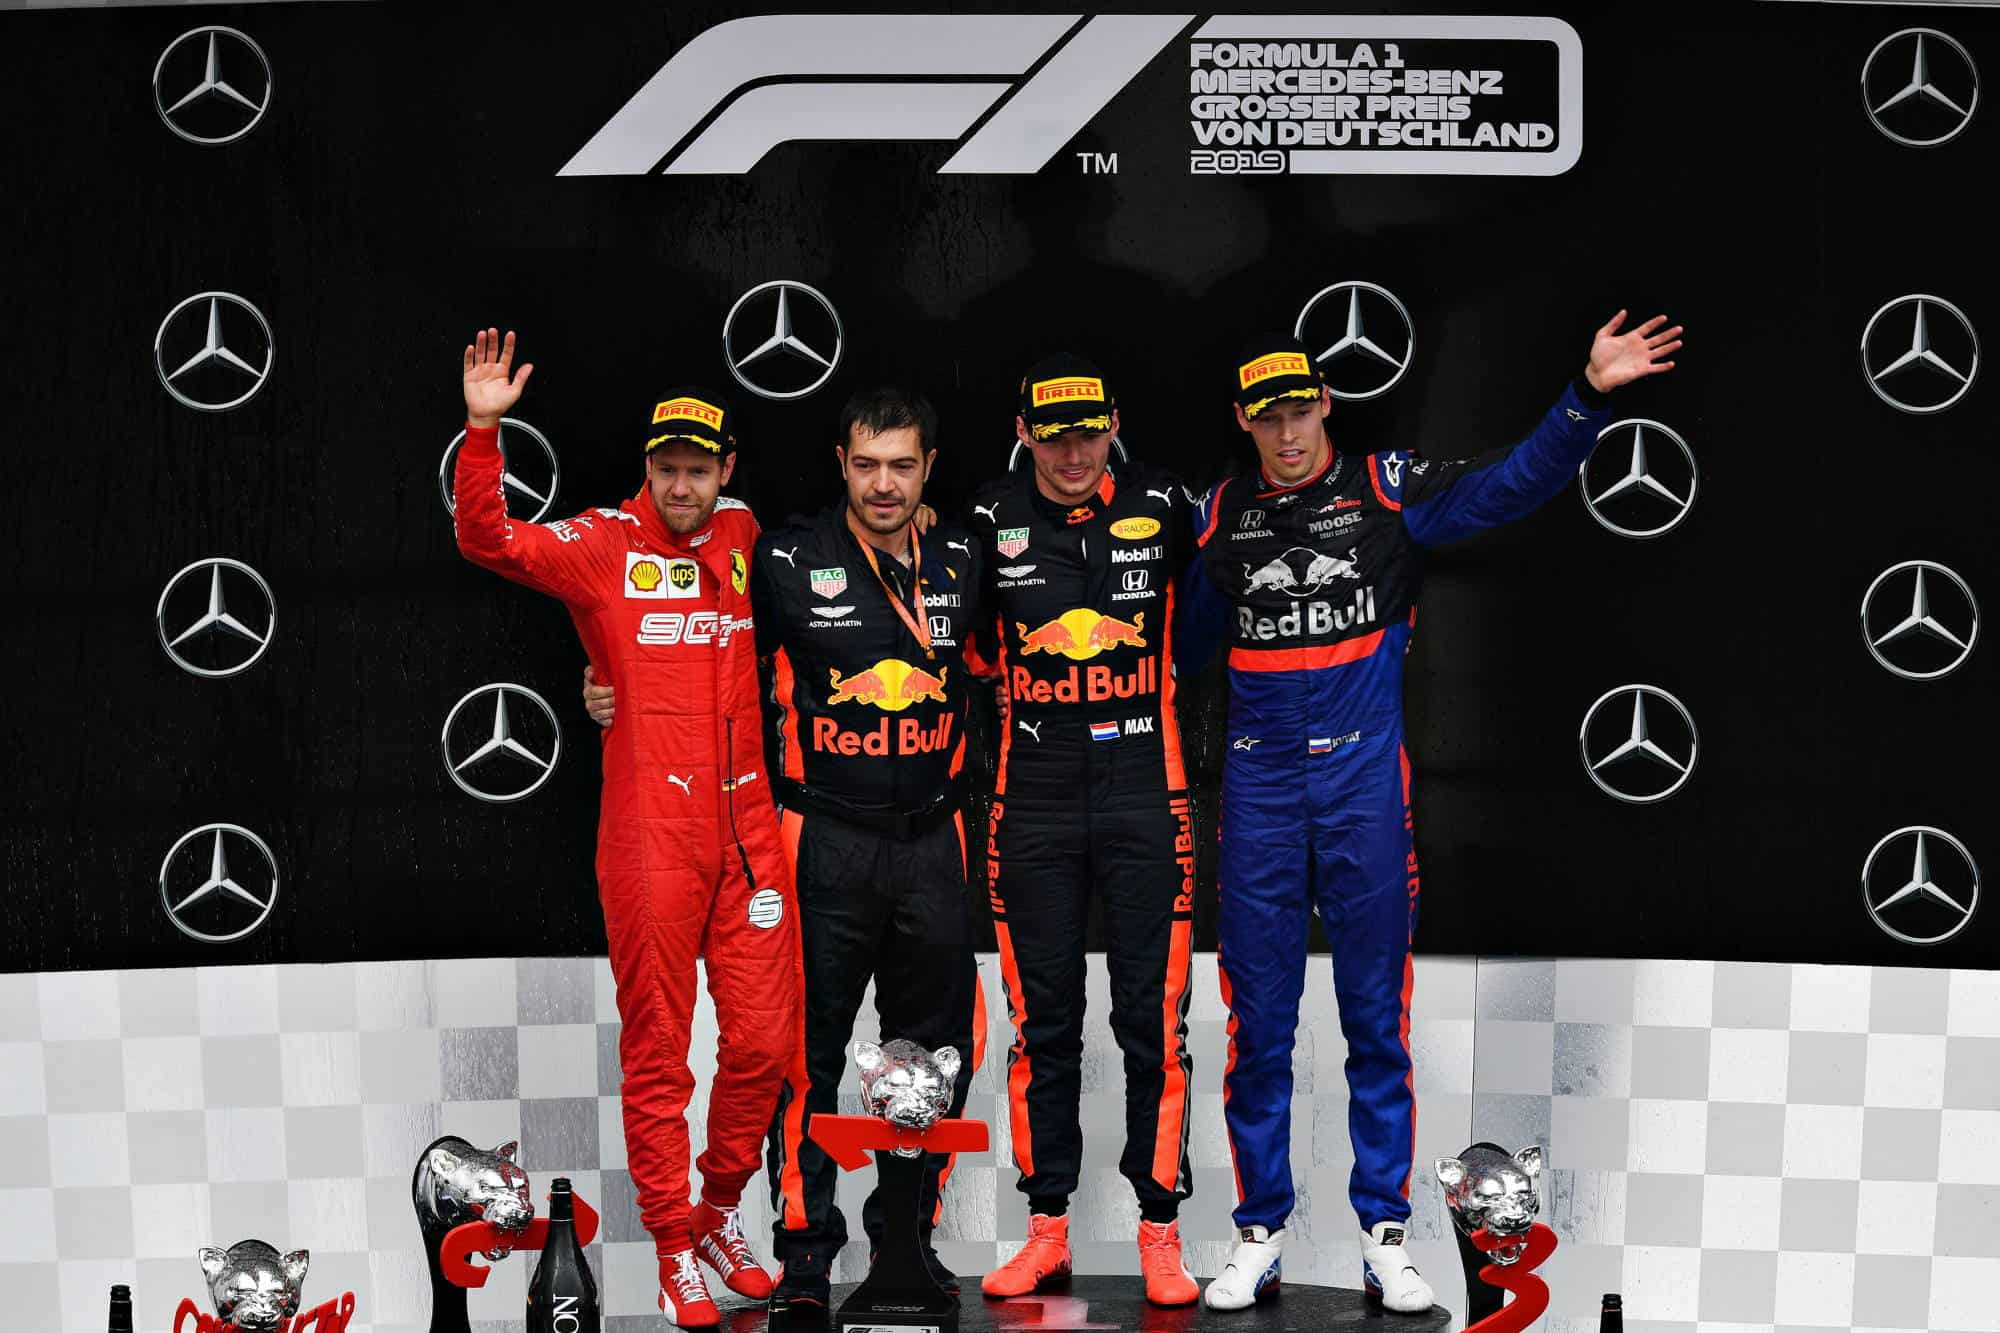 German GP F1 2019 podium Verstappen Vettel Kvyat Photo Red Bull